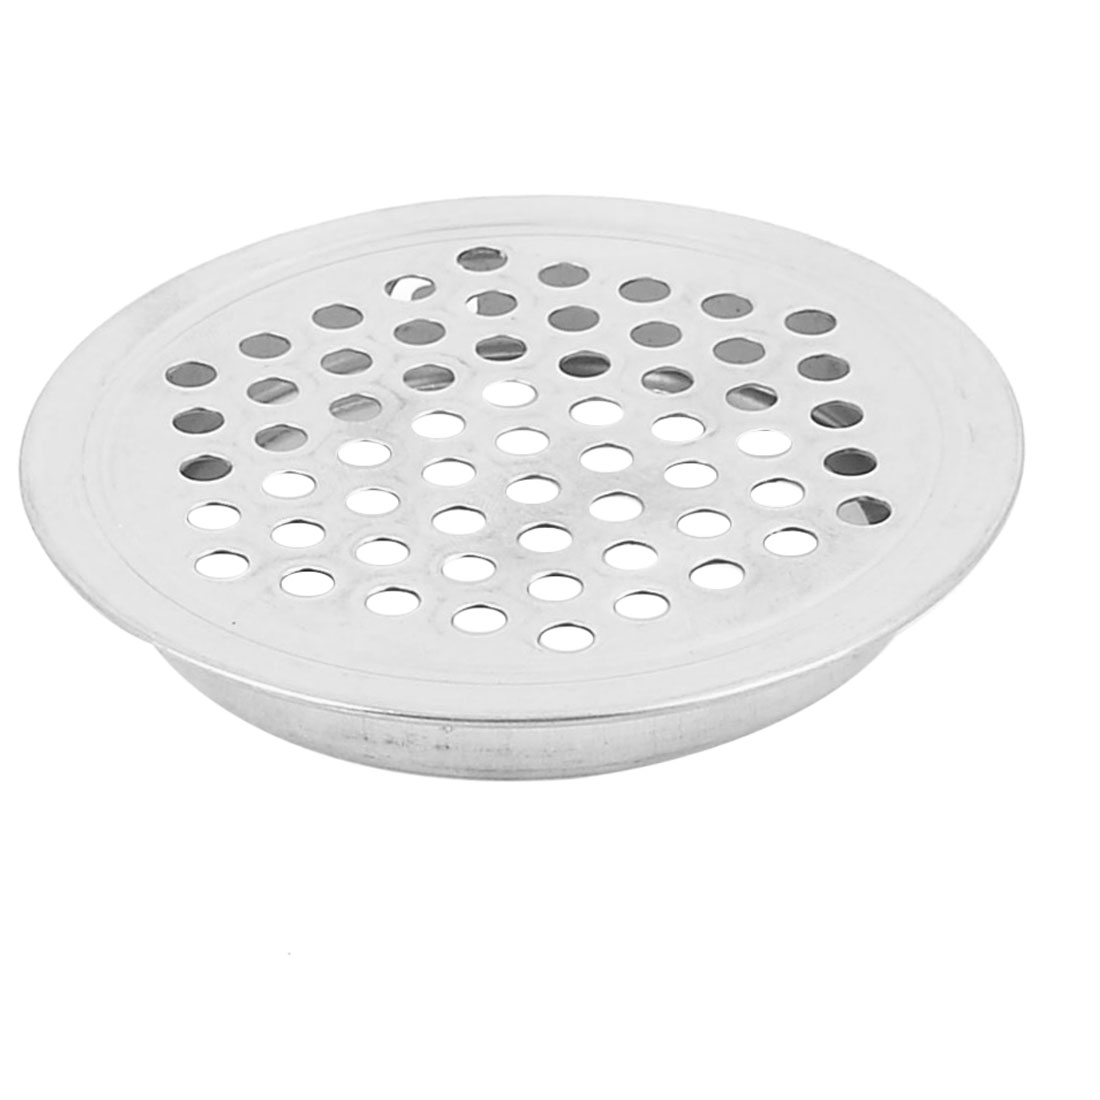 65mm Dia Silver Tone Metal Perforated Mesh Hole Cabinet Air Vent Louver Cover